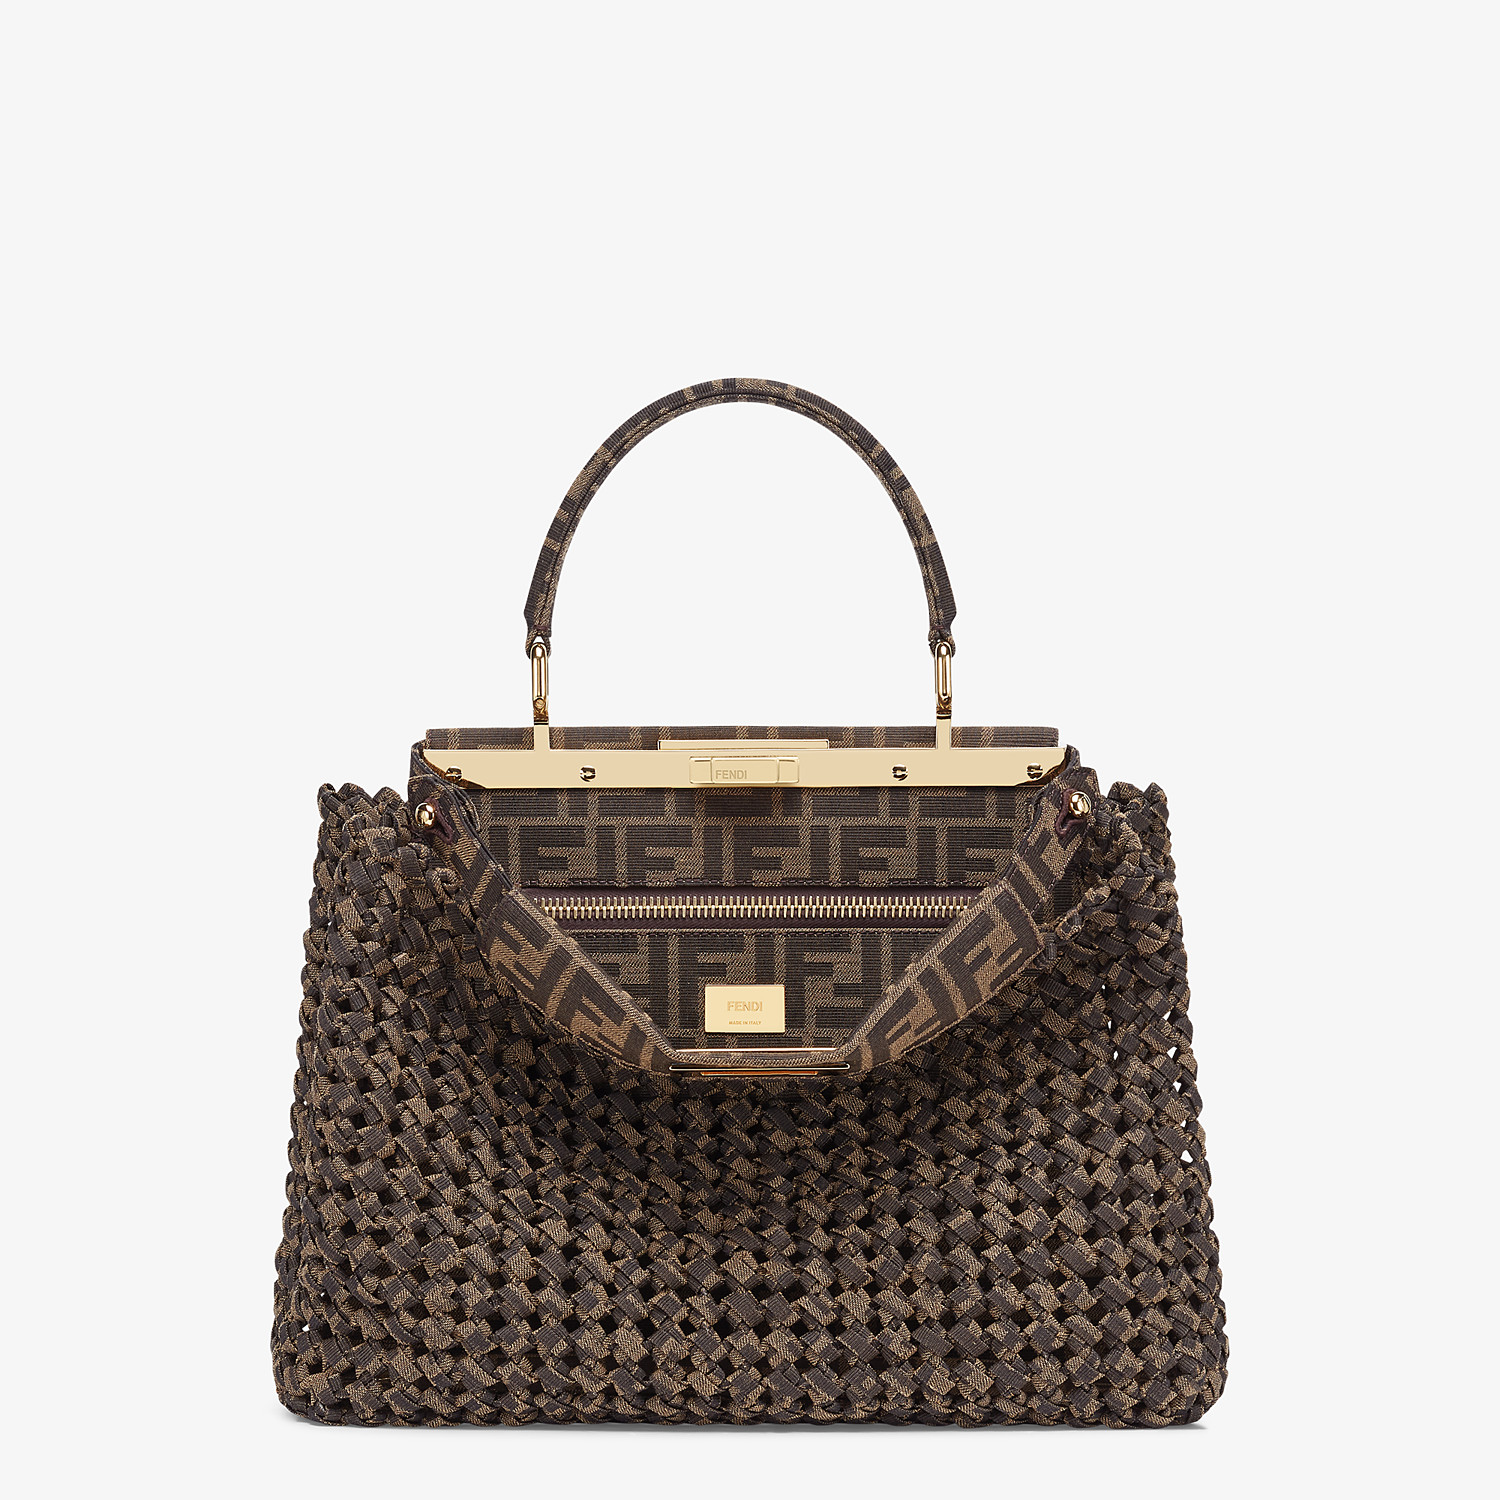 FENDI PEEKABOO ICONIC MEDIUM - Jacquard fabric interlace bag - view 1 detail